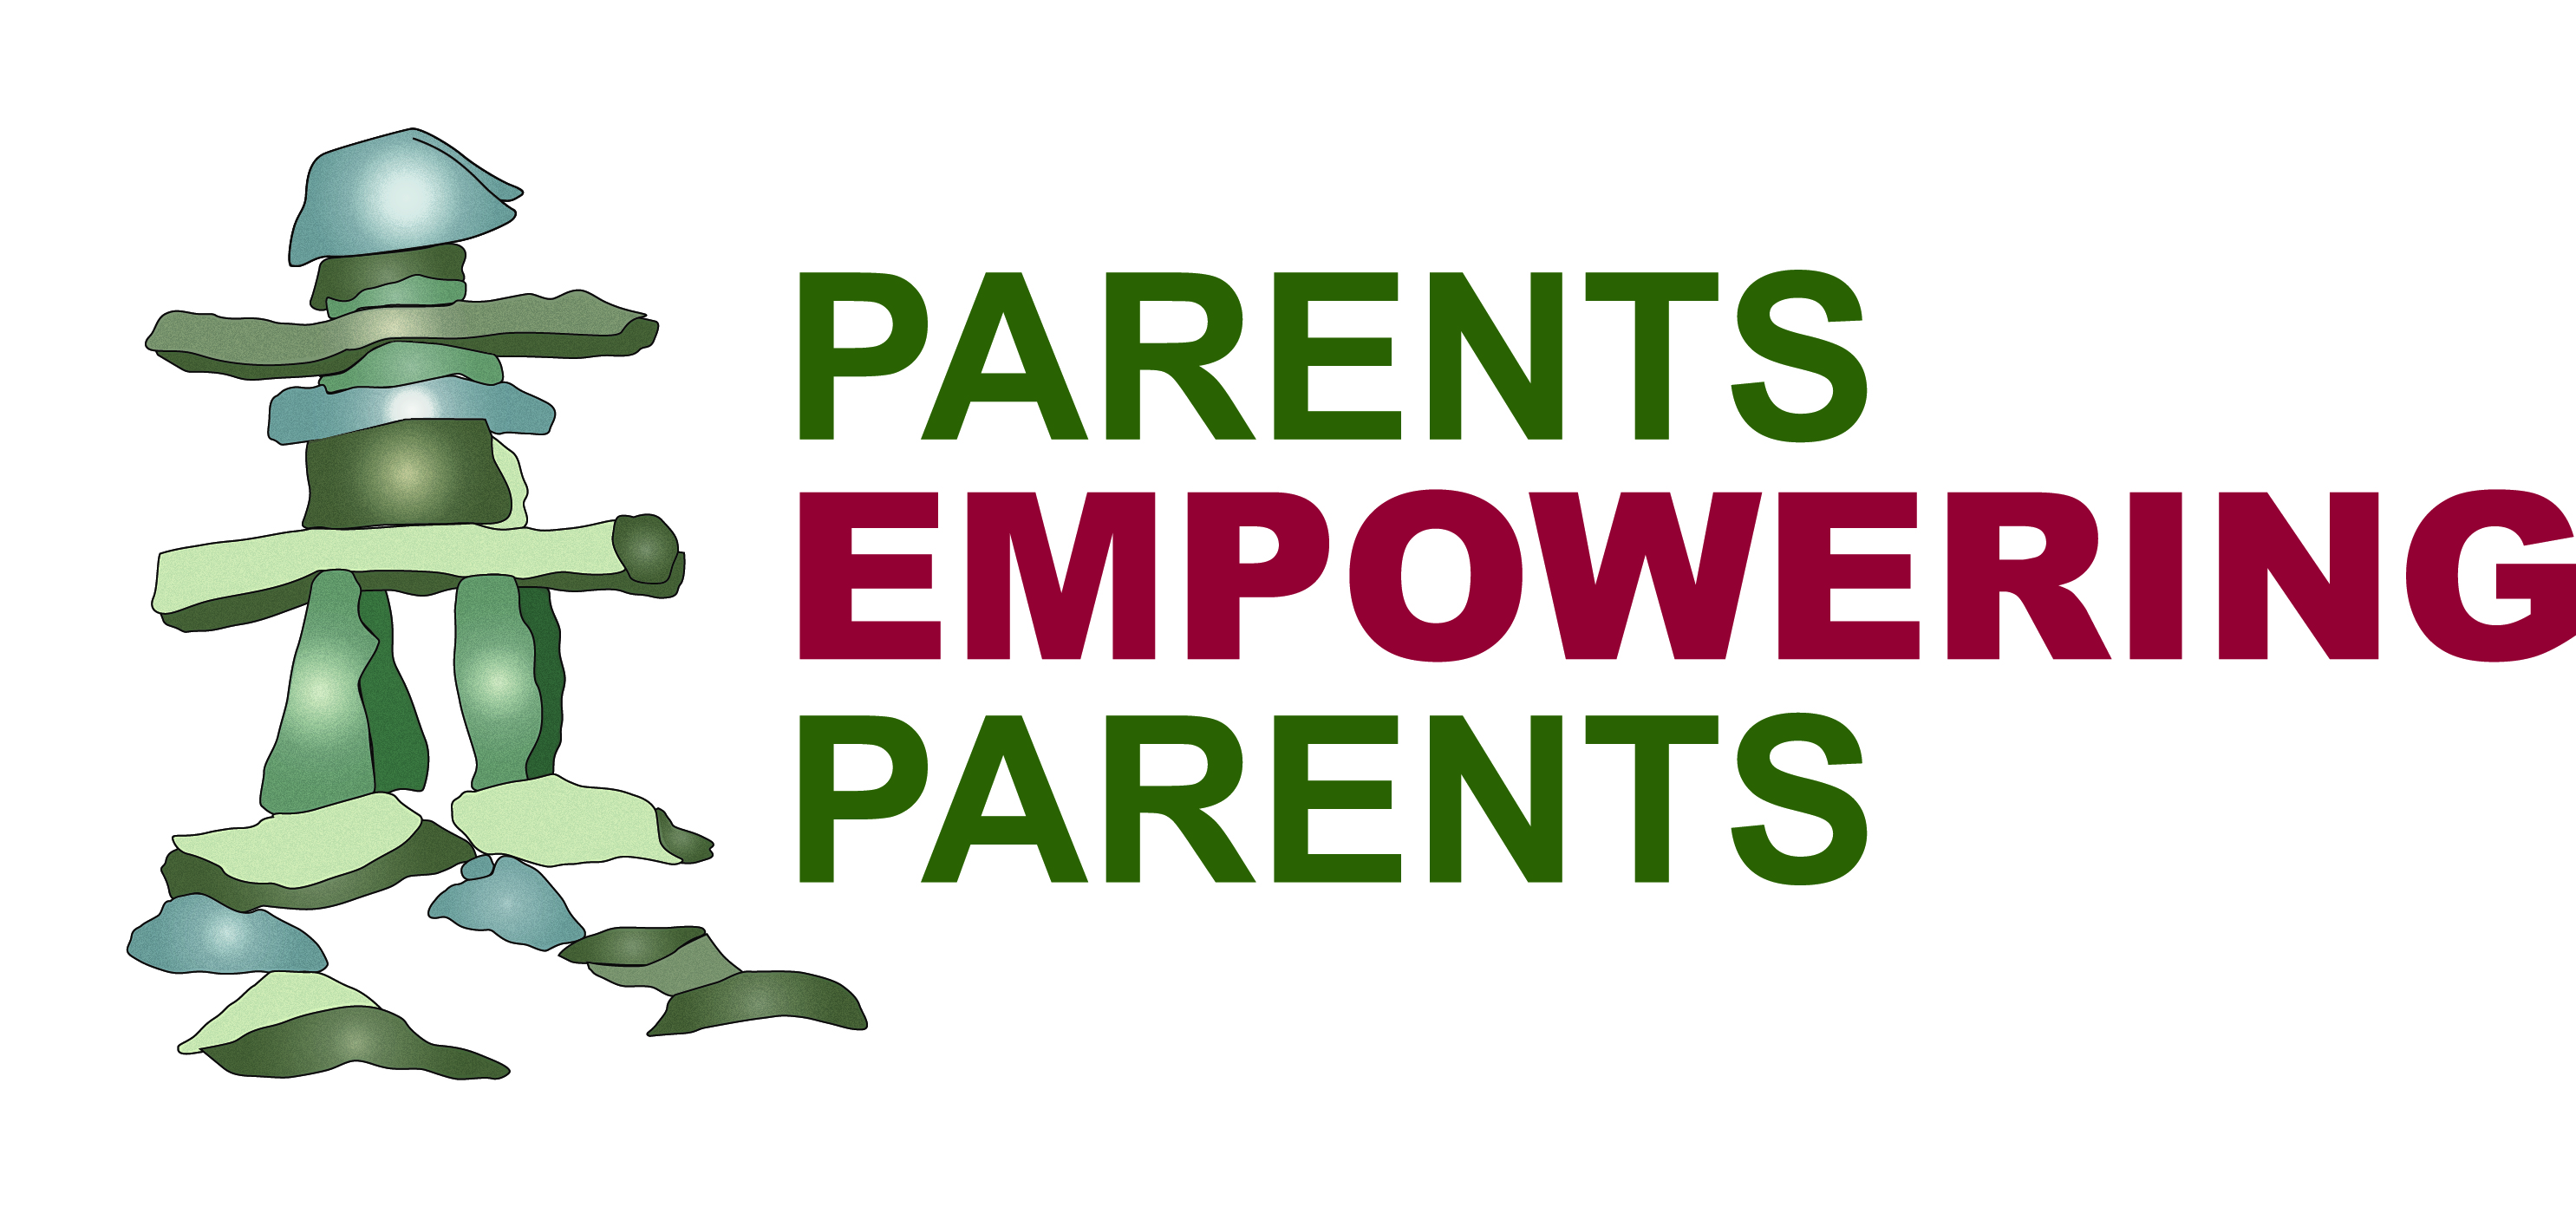 Parents Empowering Parents (Pep) Society Canadian Charity